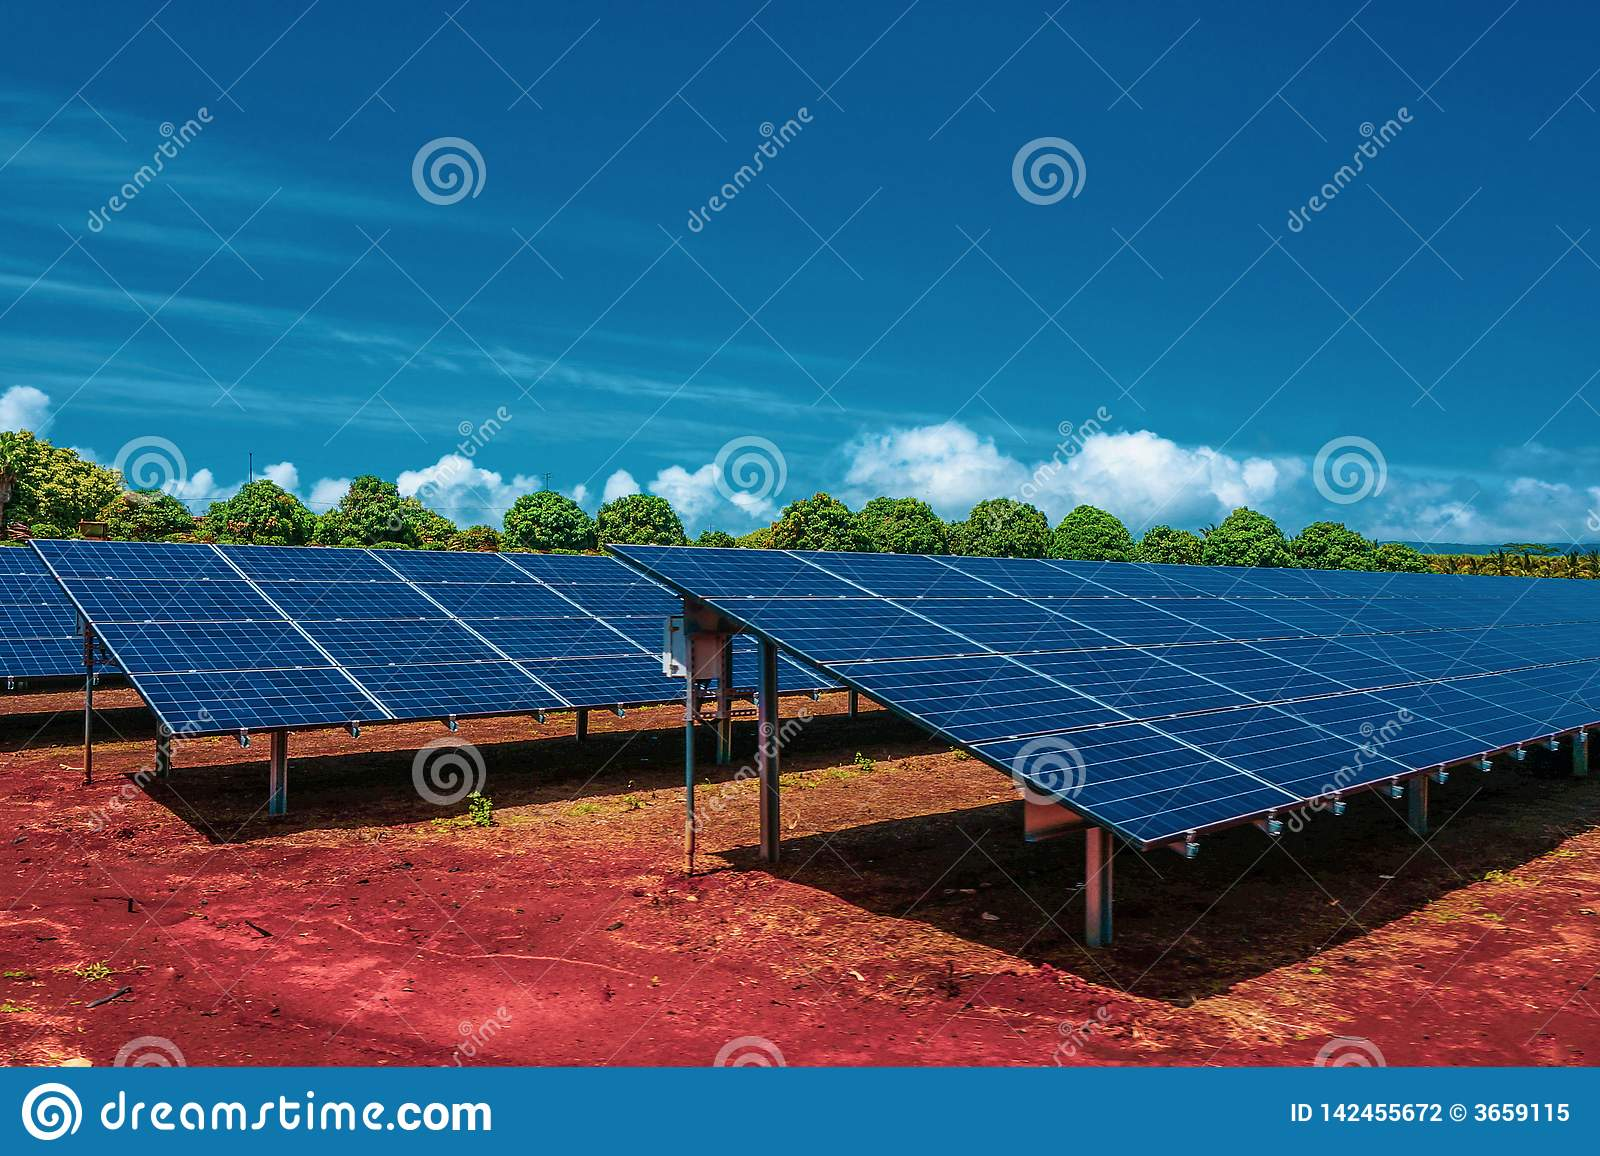 Solar panels, photovoltaics, alternative energy source, standing on the red ground with bright blue sky and green trees